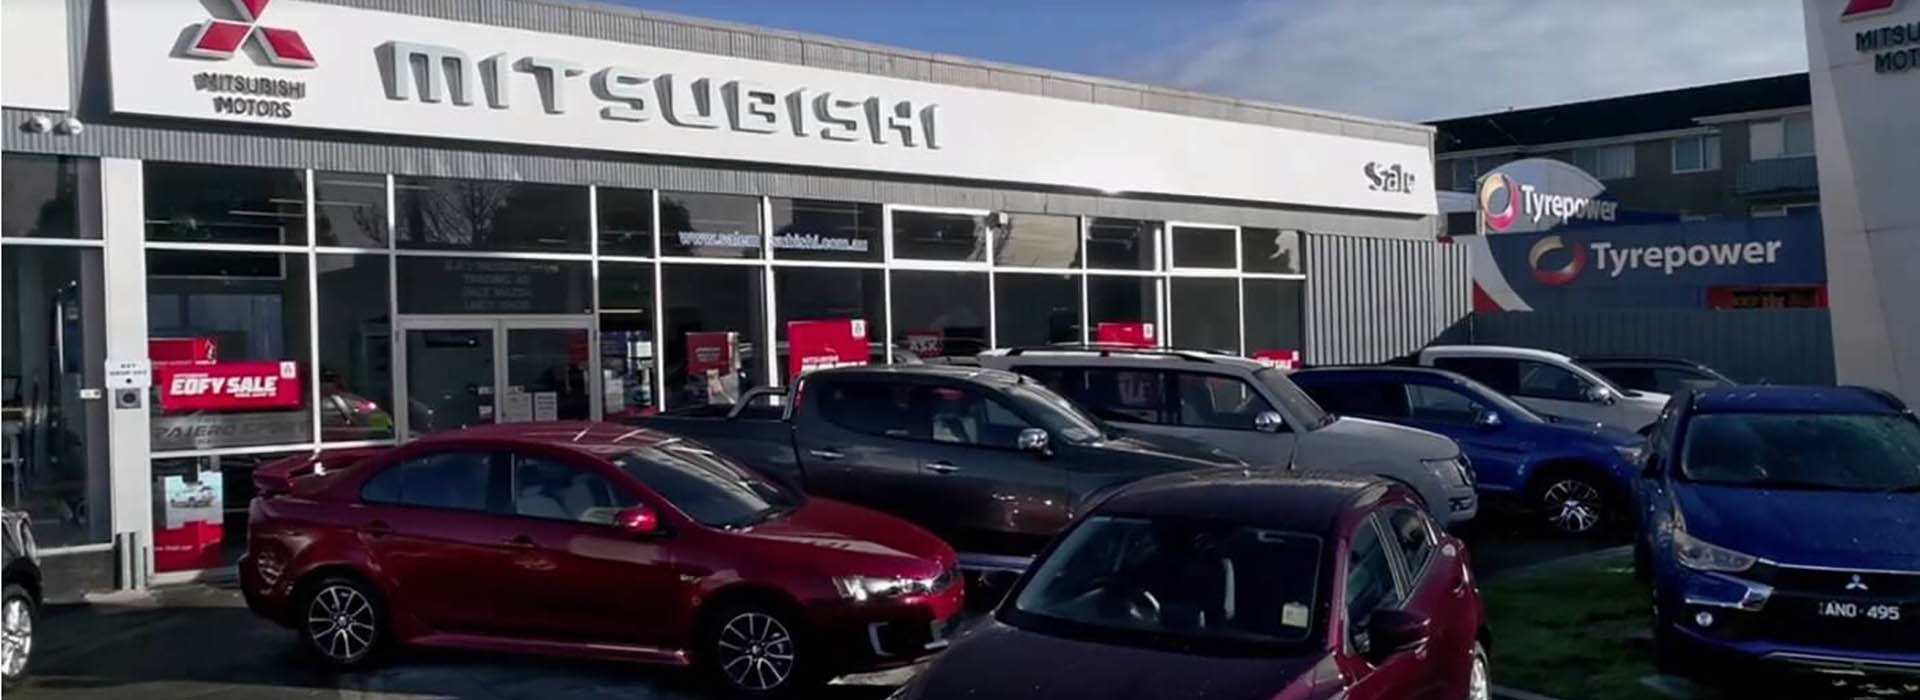 Sale Mitsubishi Dealership Image